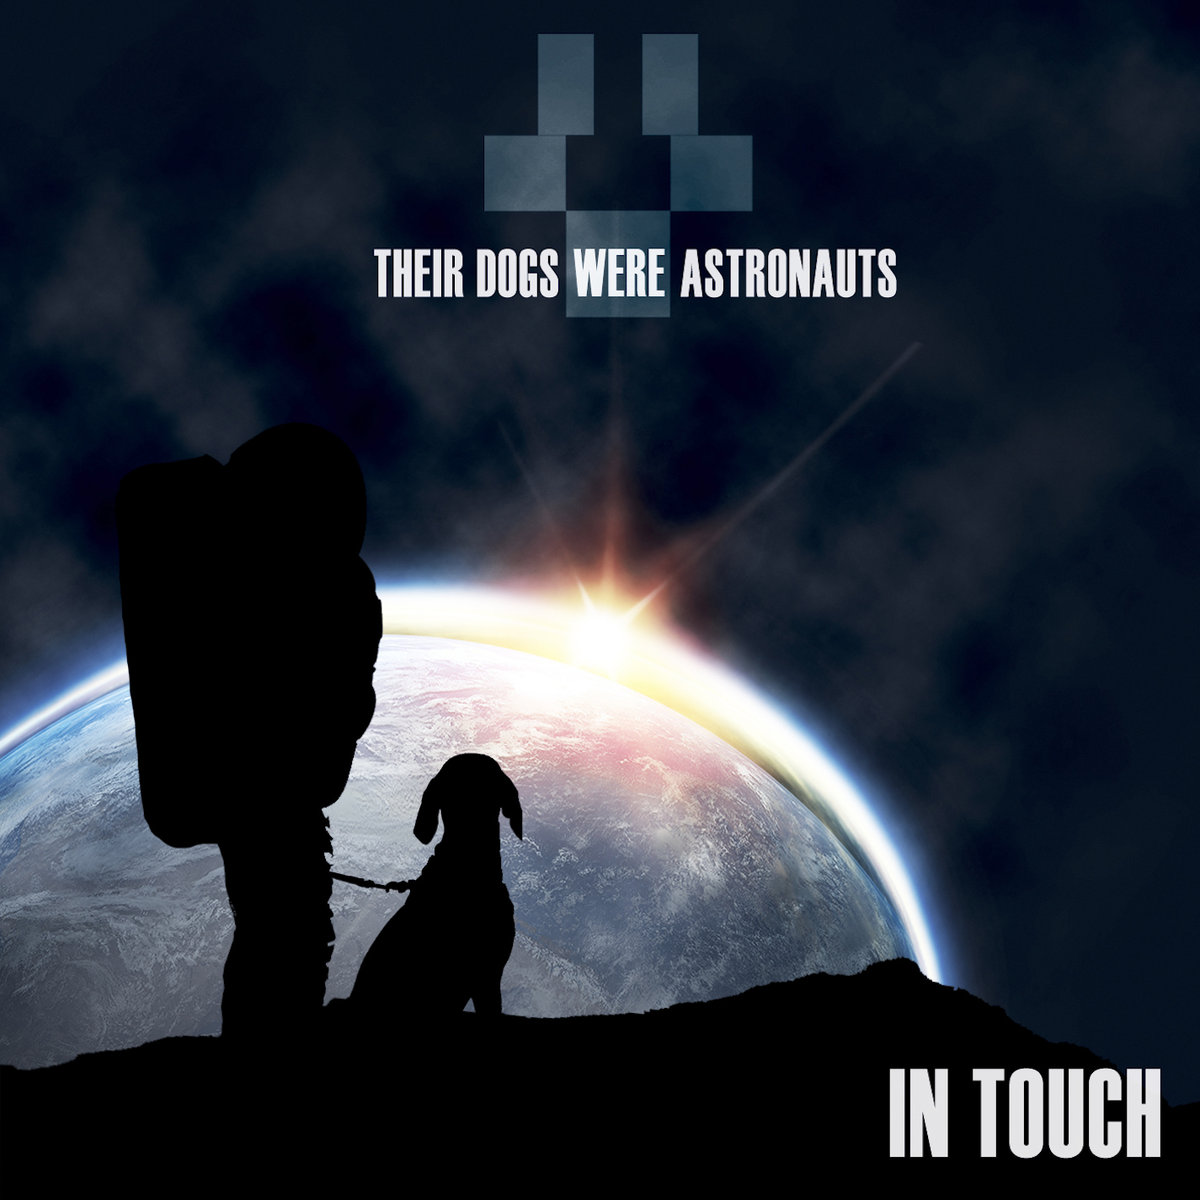 Their Dogs Were Astronauts - Lucid Night @ 'In Touch' album (instrumental metal, metal)